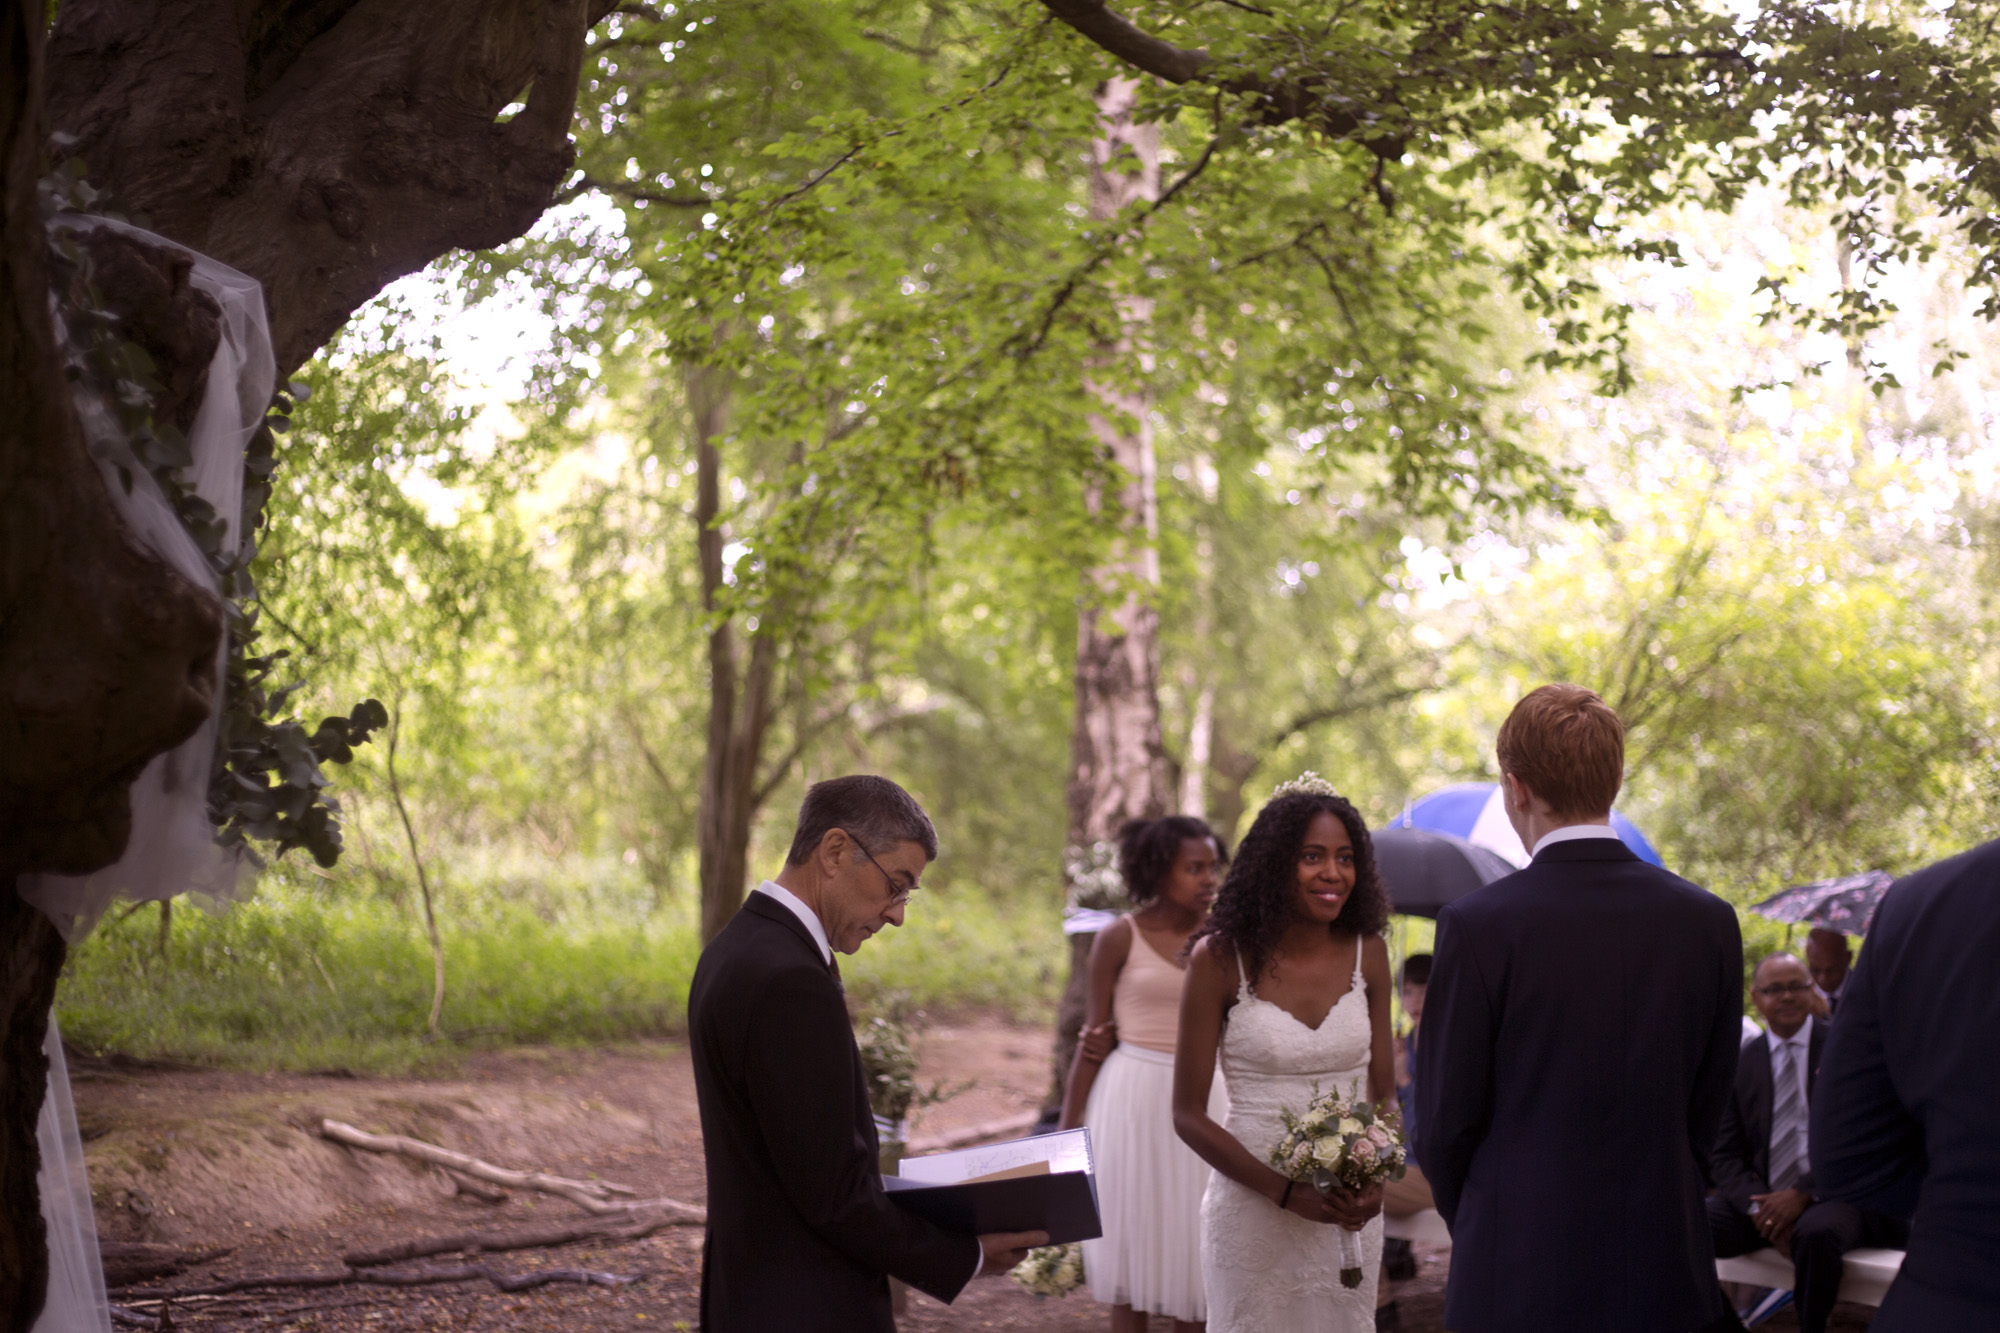 Minister leads ceremony while bride and groom smile at each other woodland wedding photographer